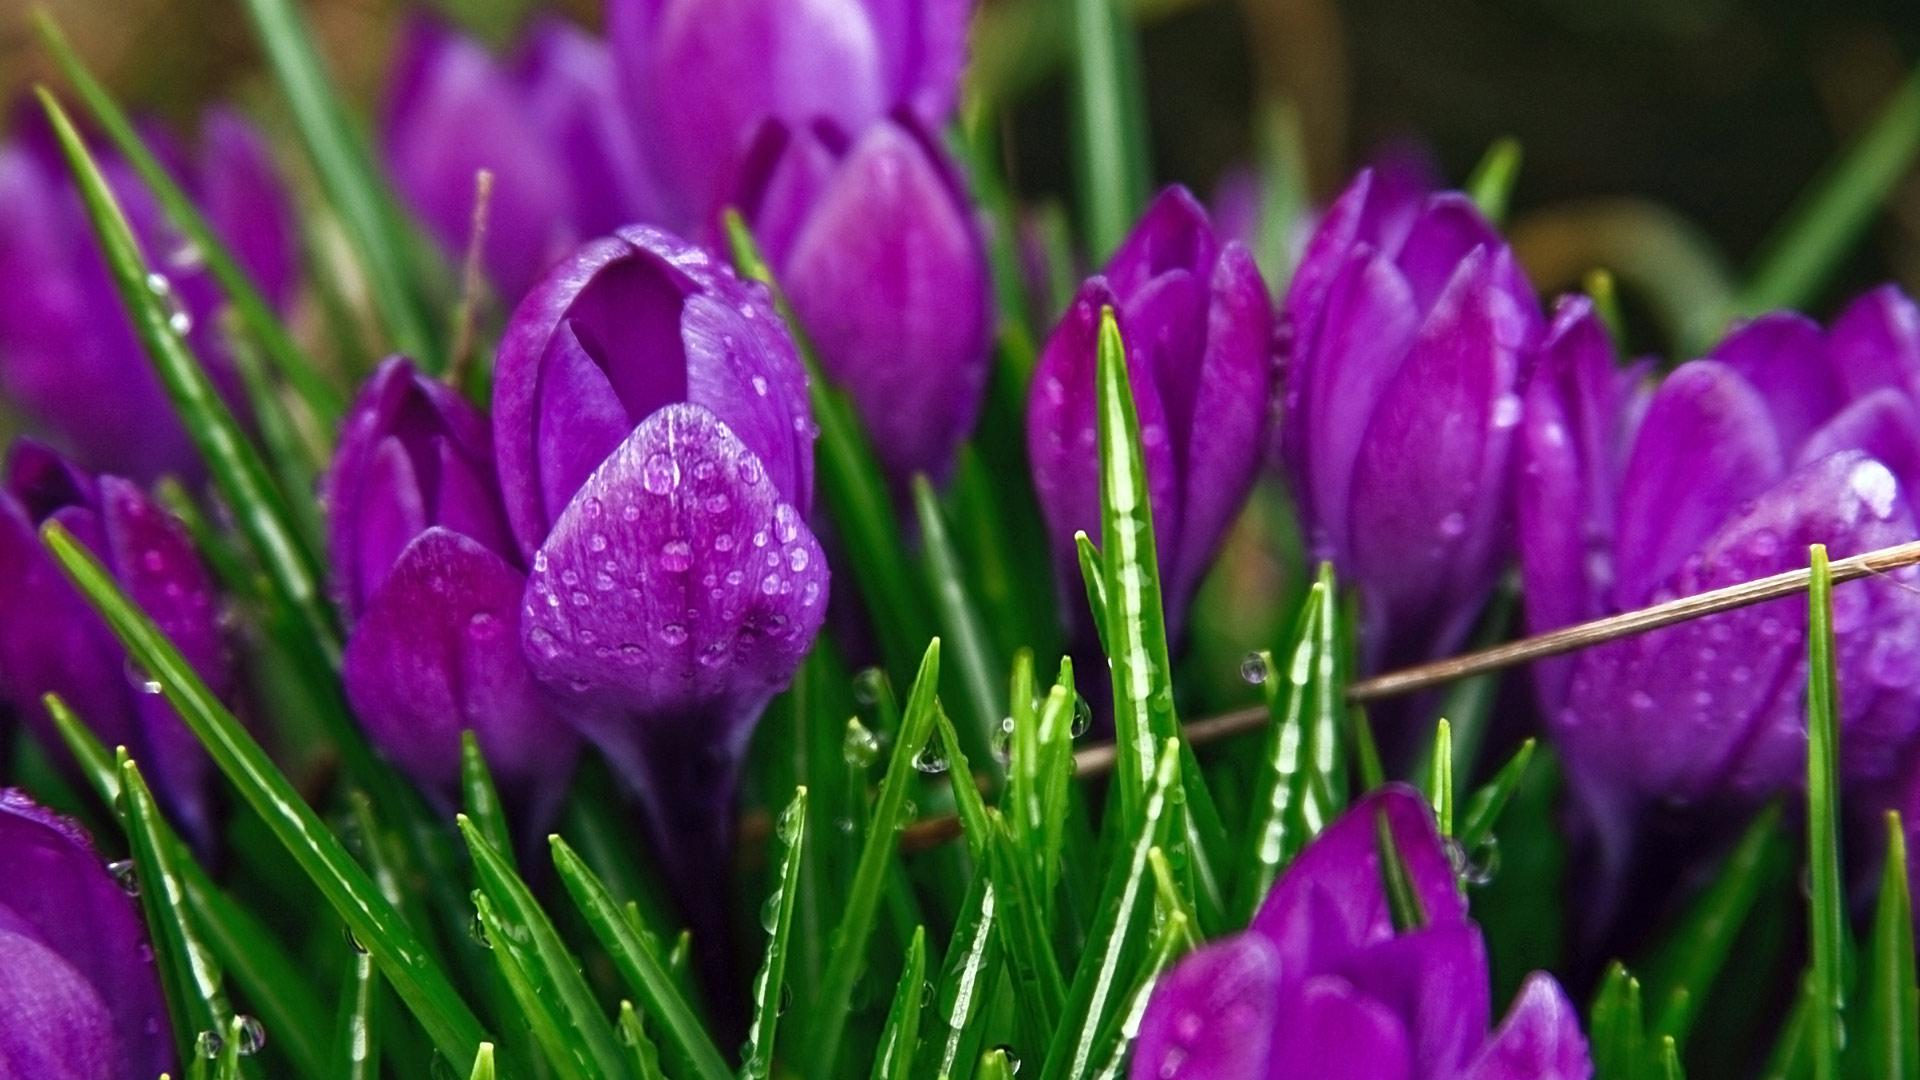 Beautiful wallpapers and images of flowers - Amazing Color Beautiful Wallpapers